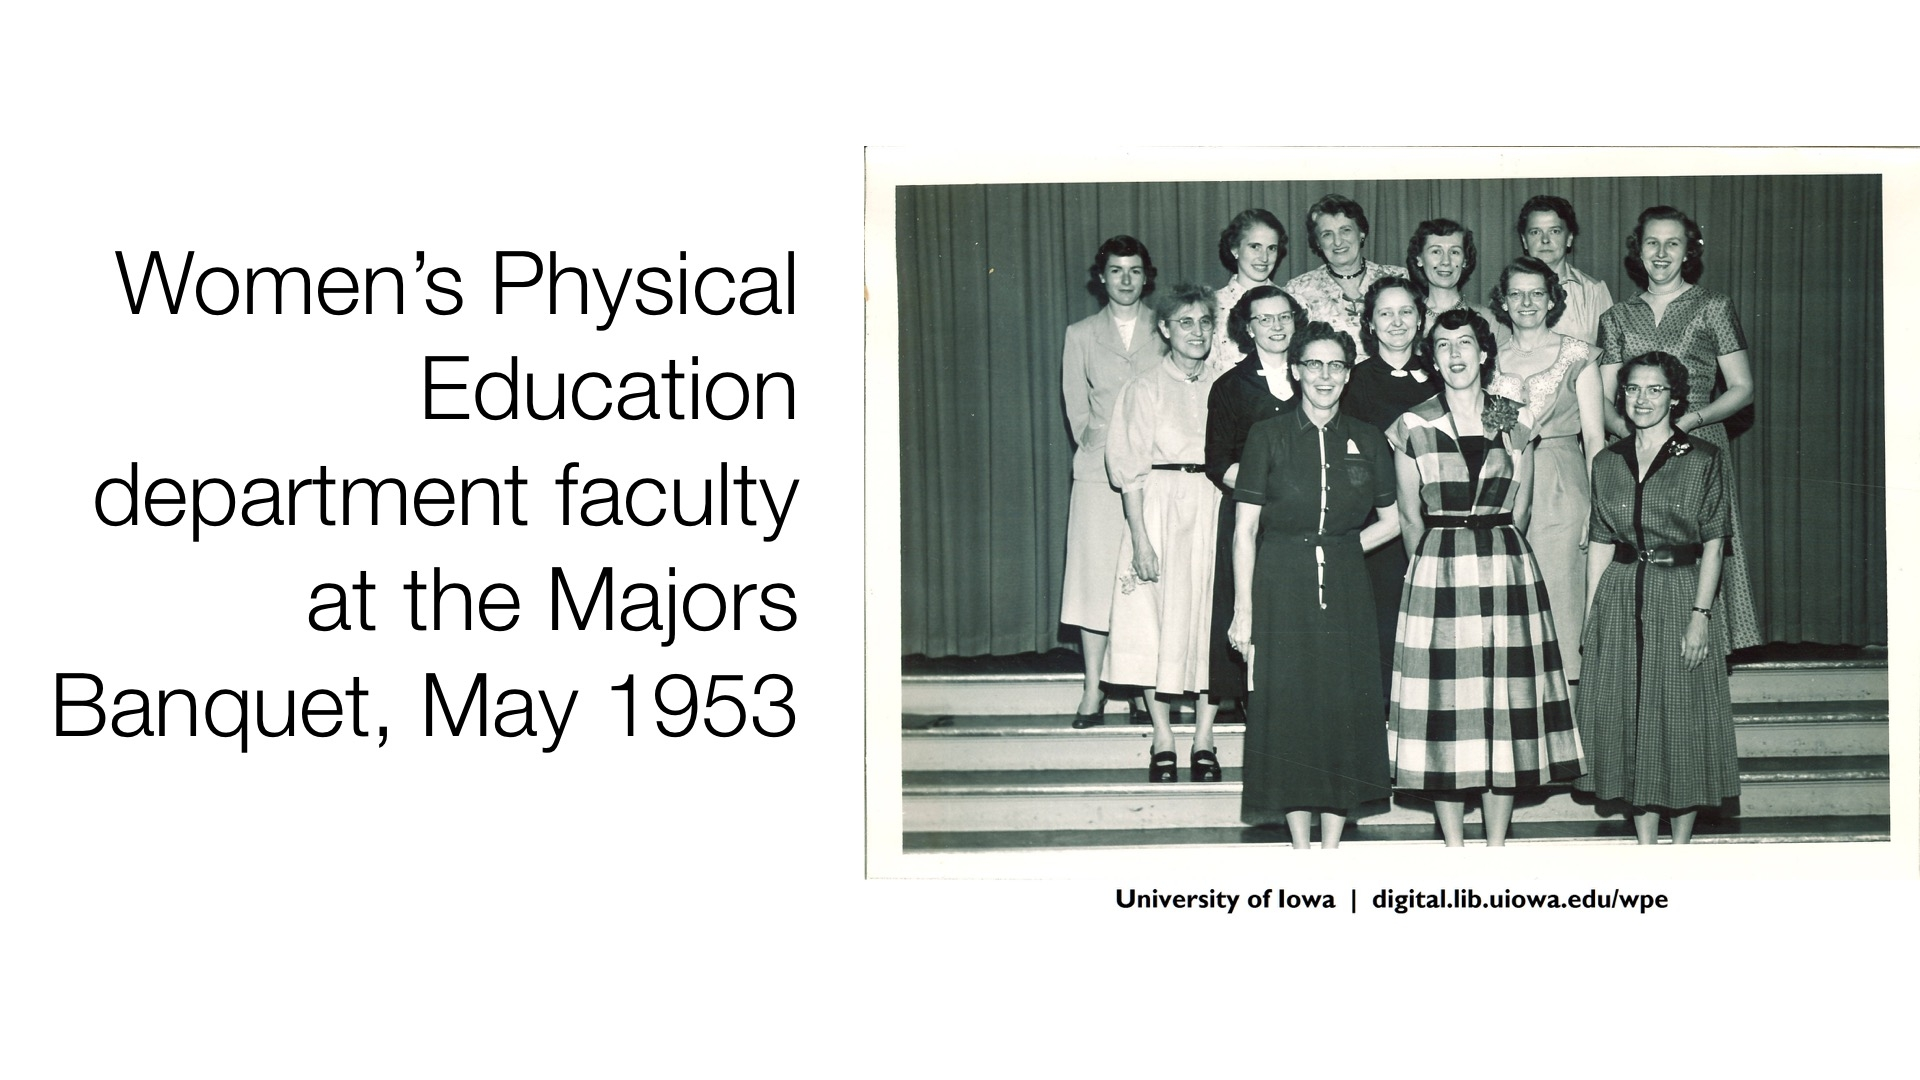 Women's Physical Education department faculty at the Majors Banquet, May 1953